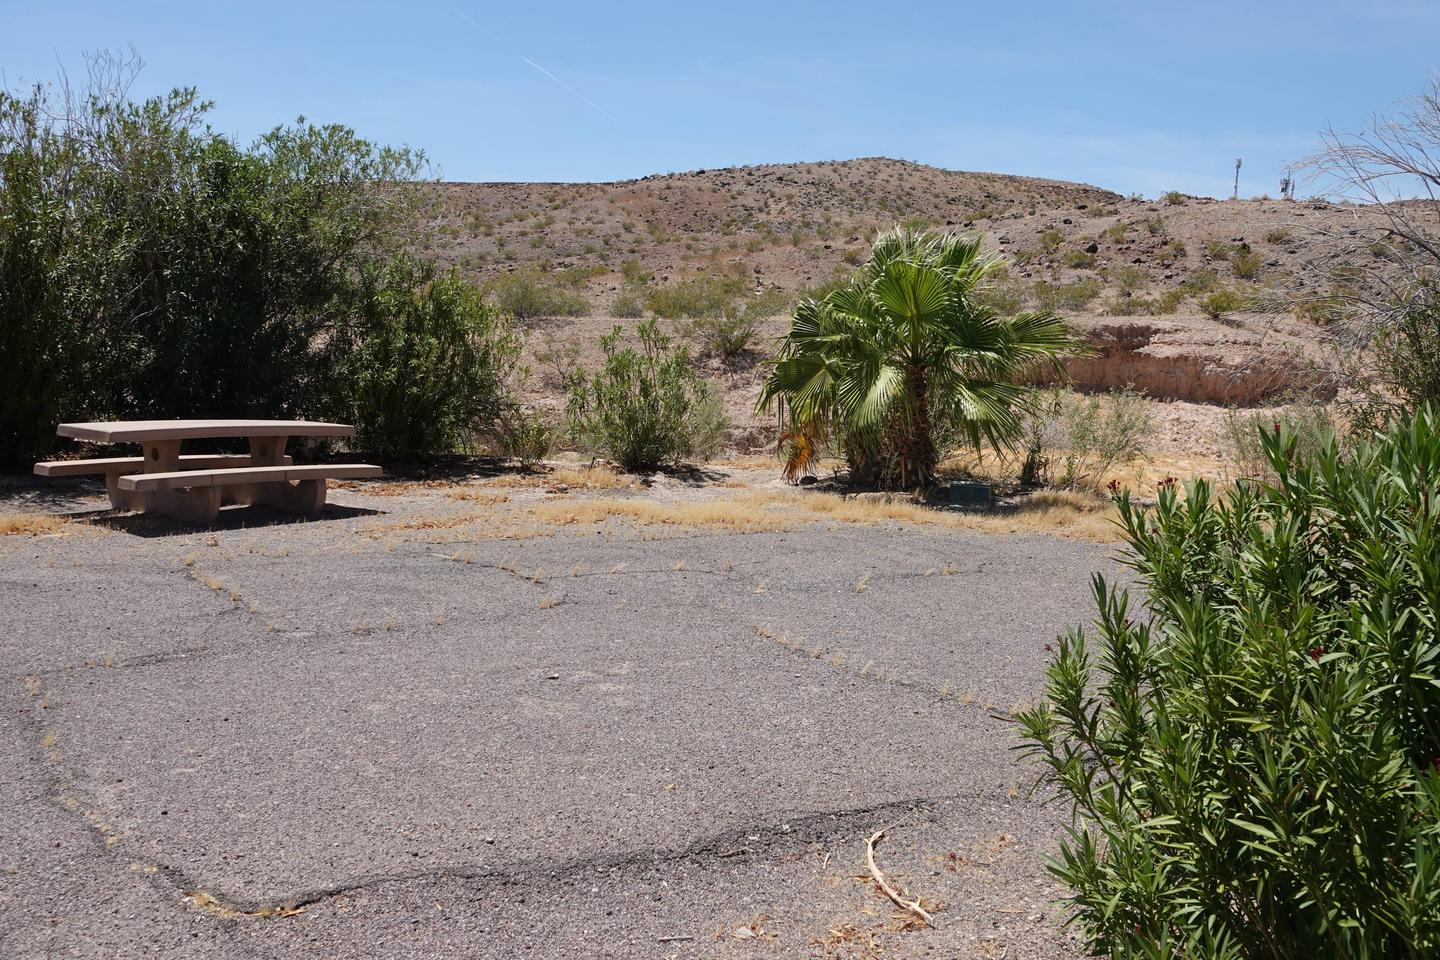 Campsite located in a desert setting1Callville Bay Site 25